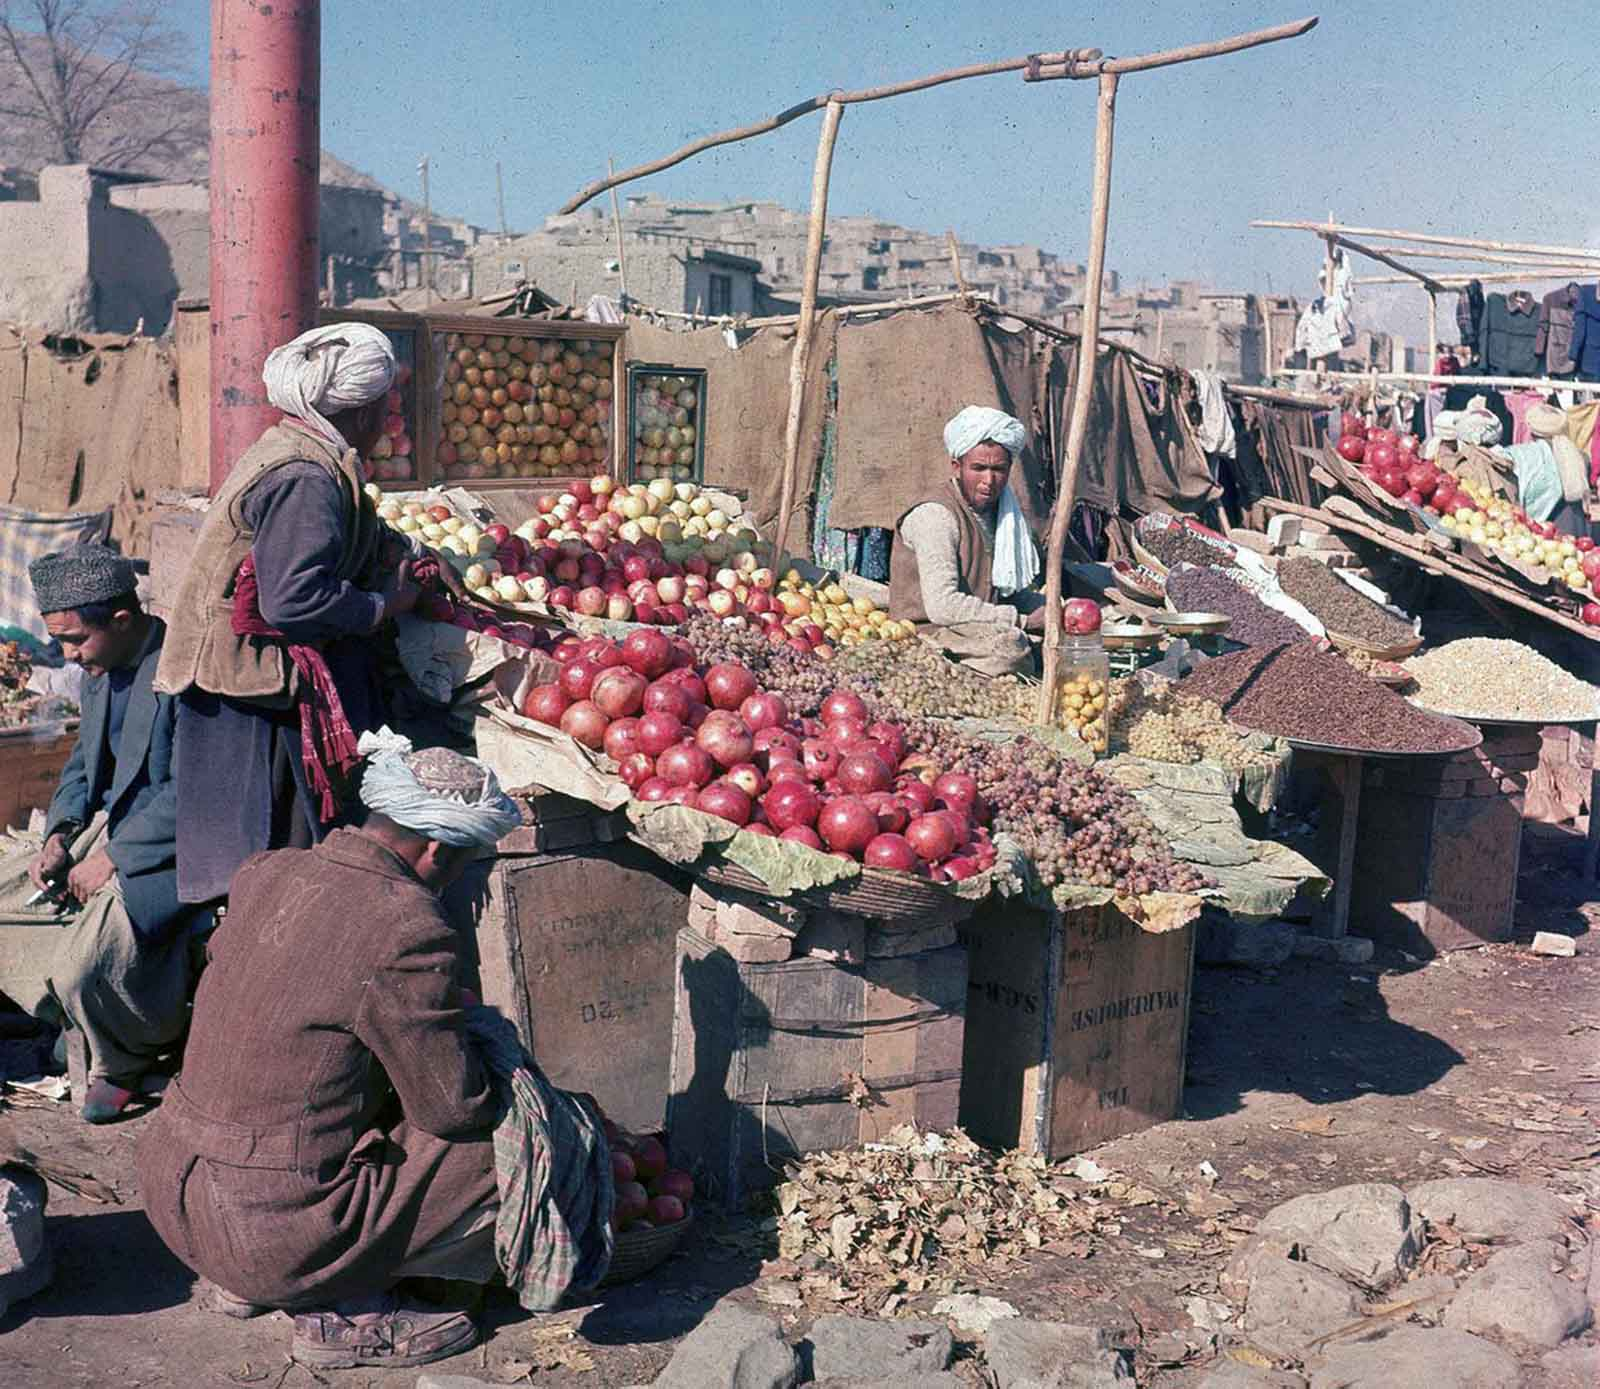 Vendors sell various fuits and nuts at an outdoor market in Kabul, in November of 1961.